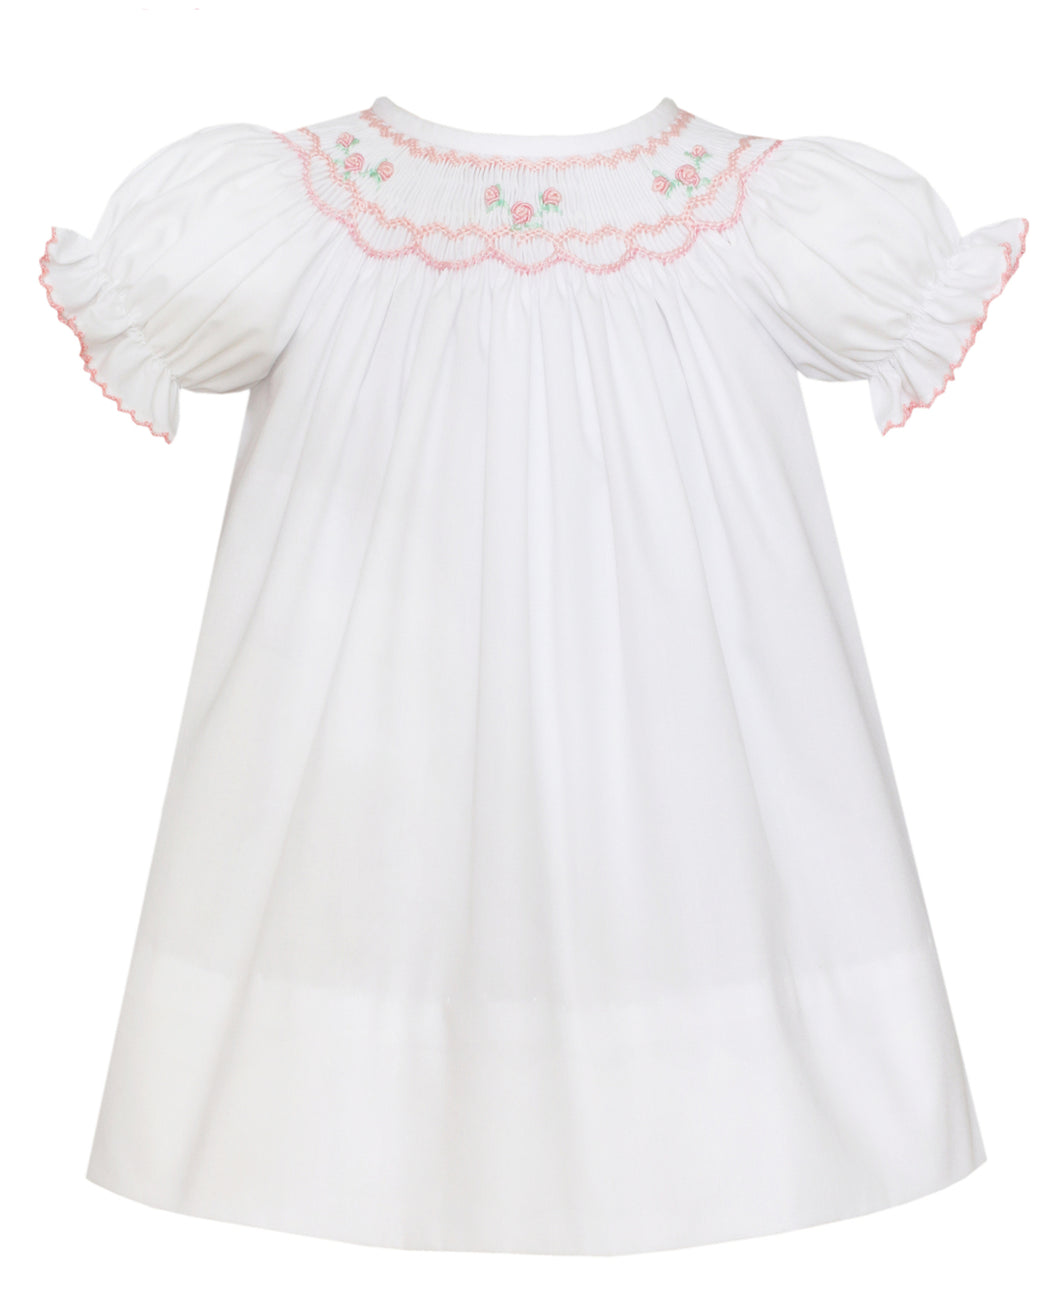 Katie Bishop Dress White w/ Pink